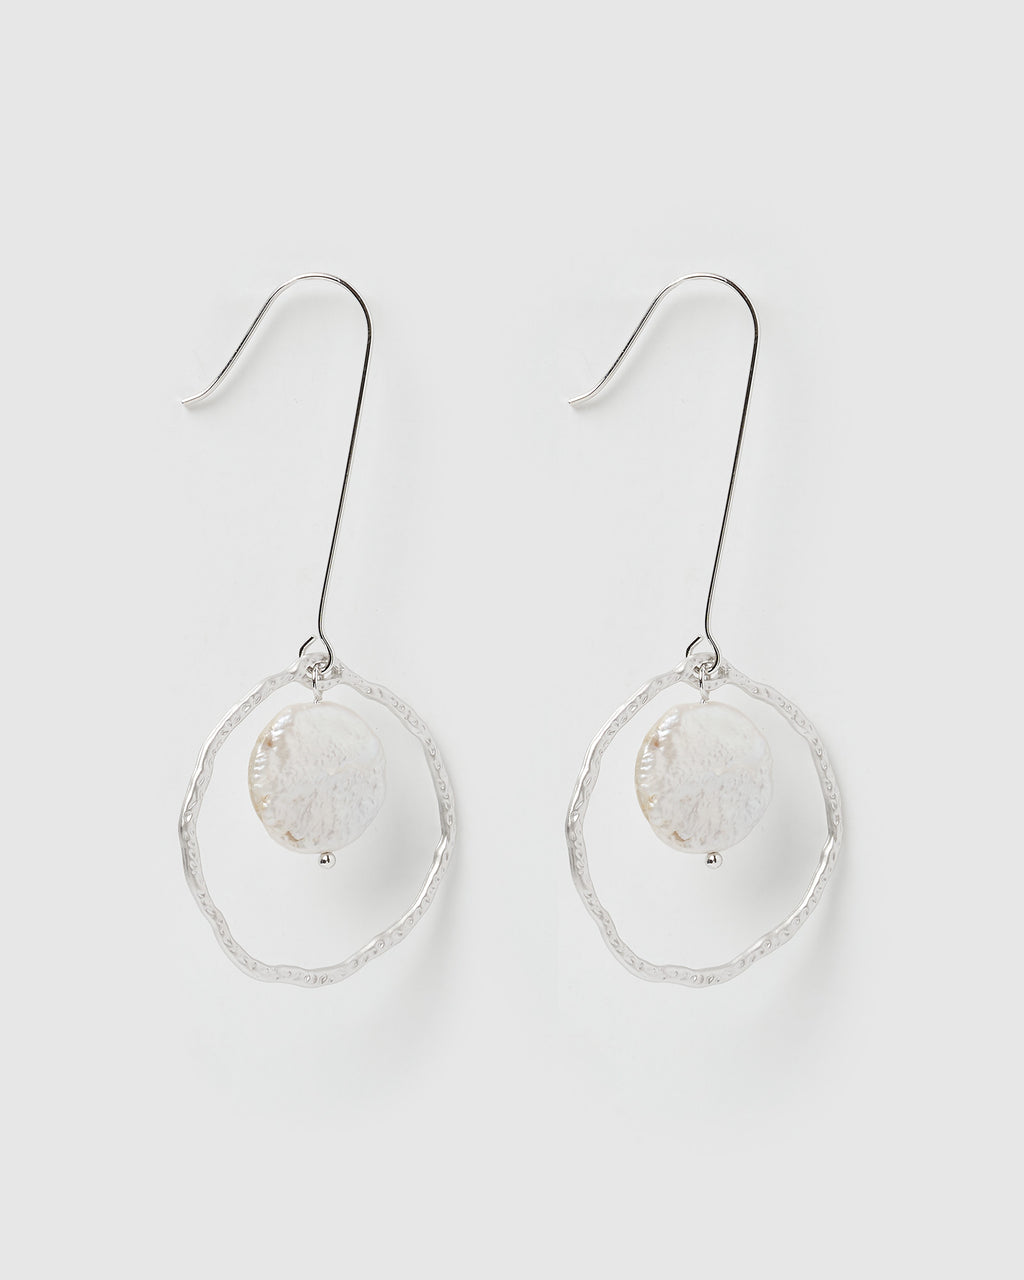 Izoa Astonish Earrings Silver Freshwater Pearl